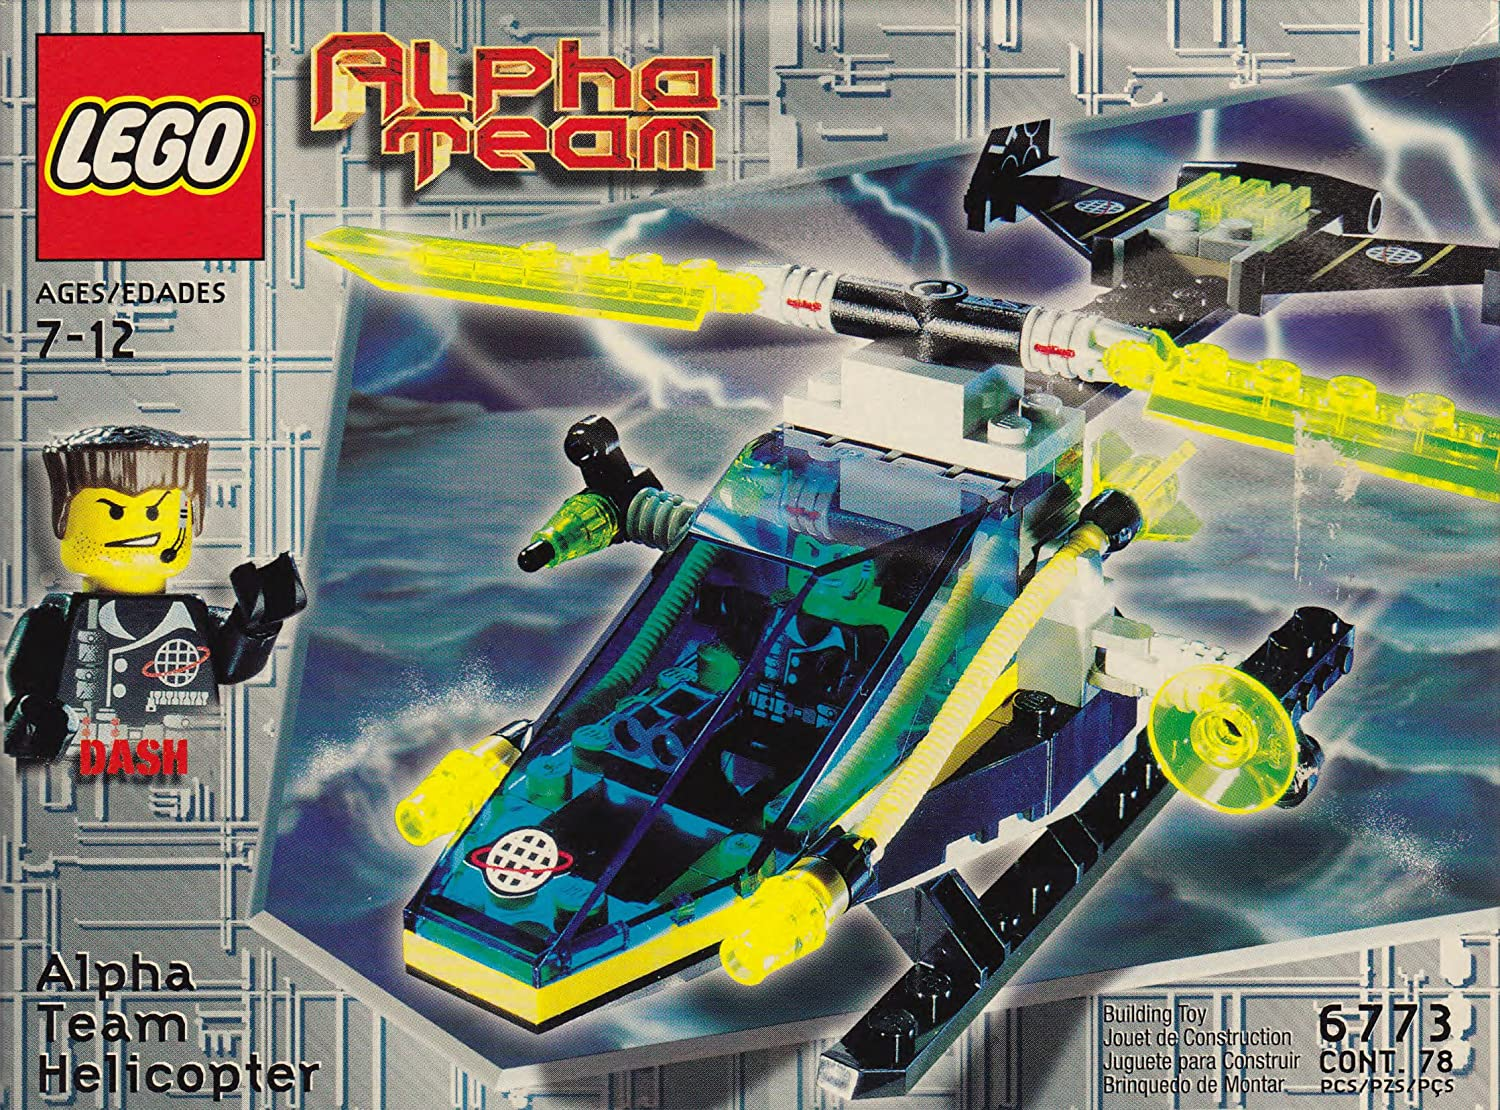 LEGO 6773 Alpha Team Helicopter